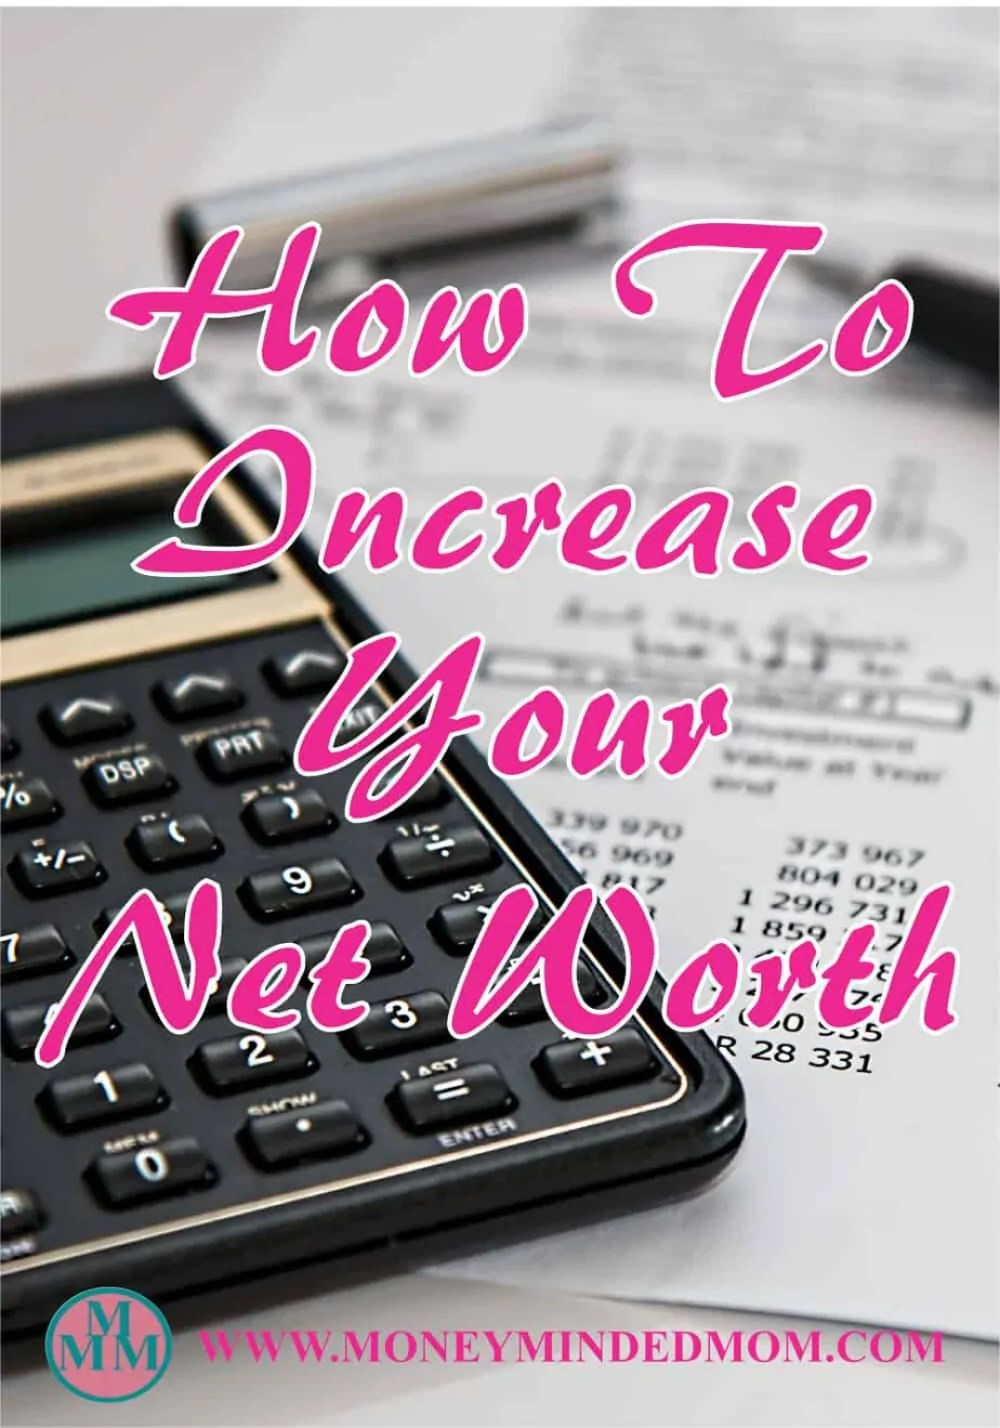 How to Increase Your Net Worth. Learn some easy ways that you can do to increase your net worth. Read on to find out how.